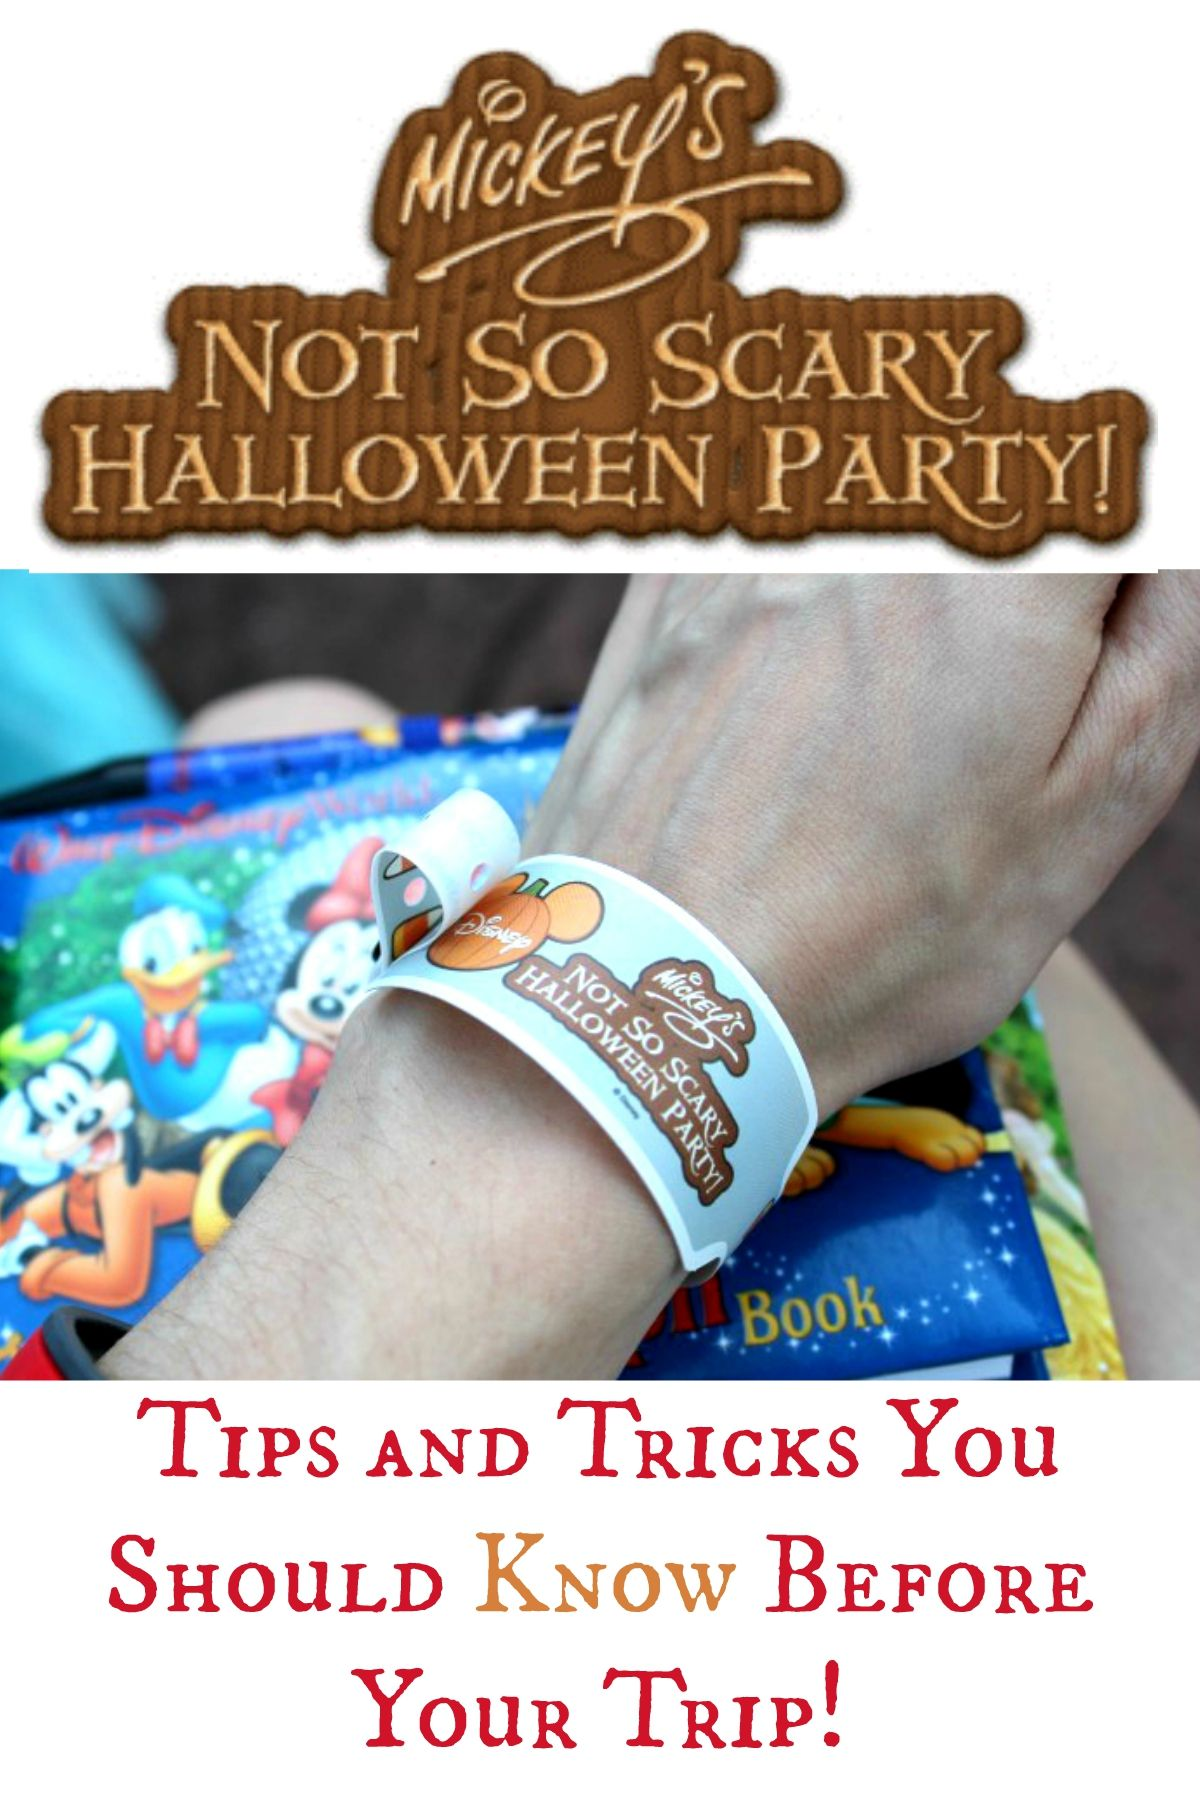 mickey not so scary halloween party costume ideas - Google zoeken ...